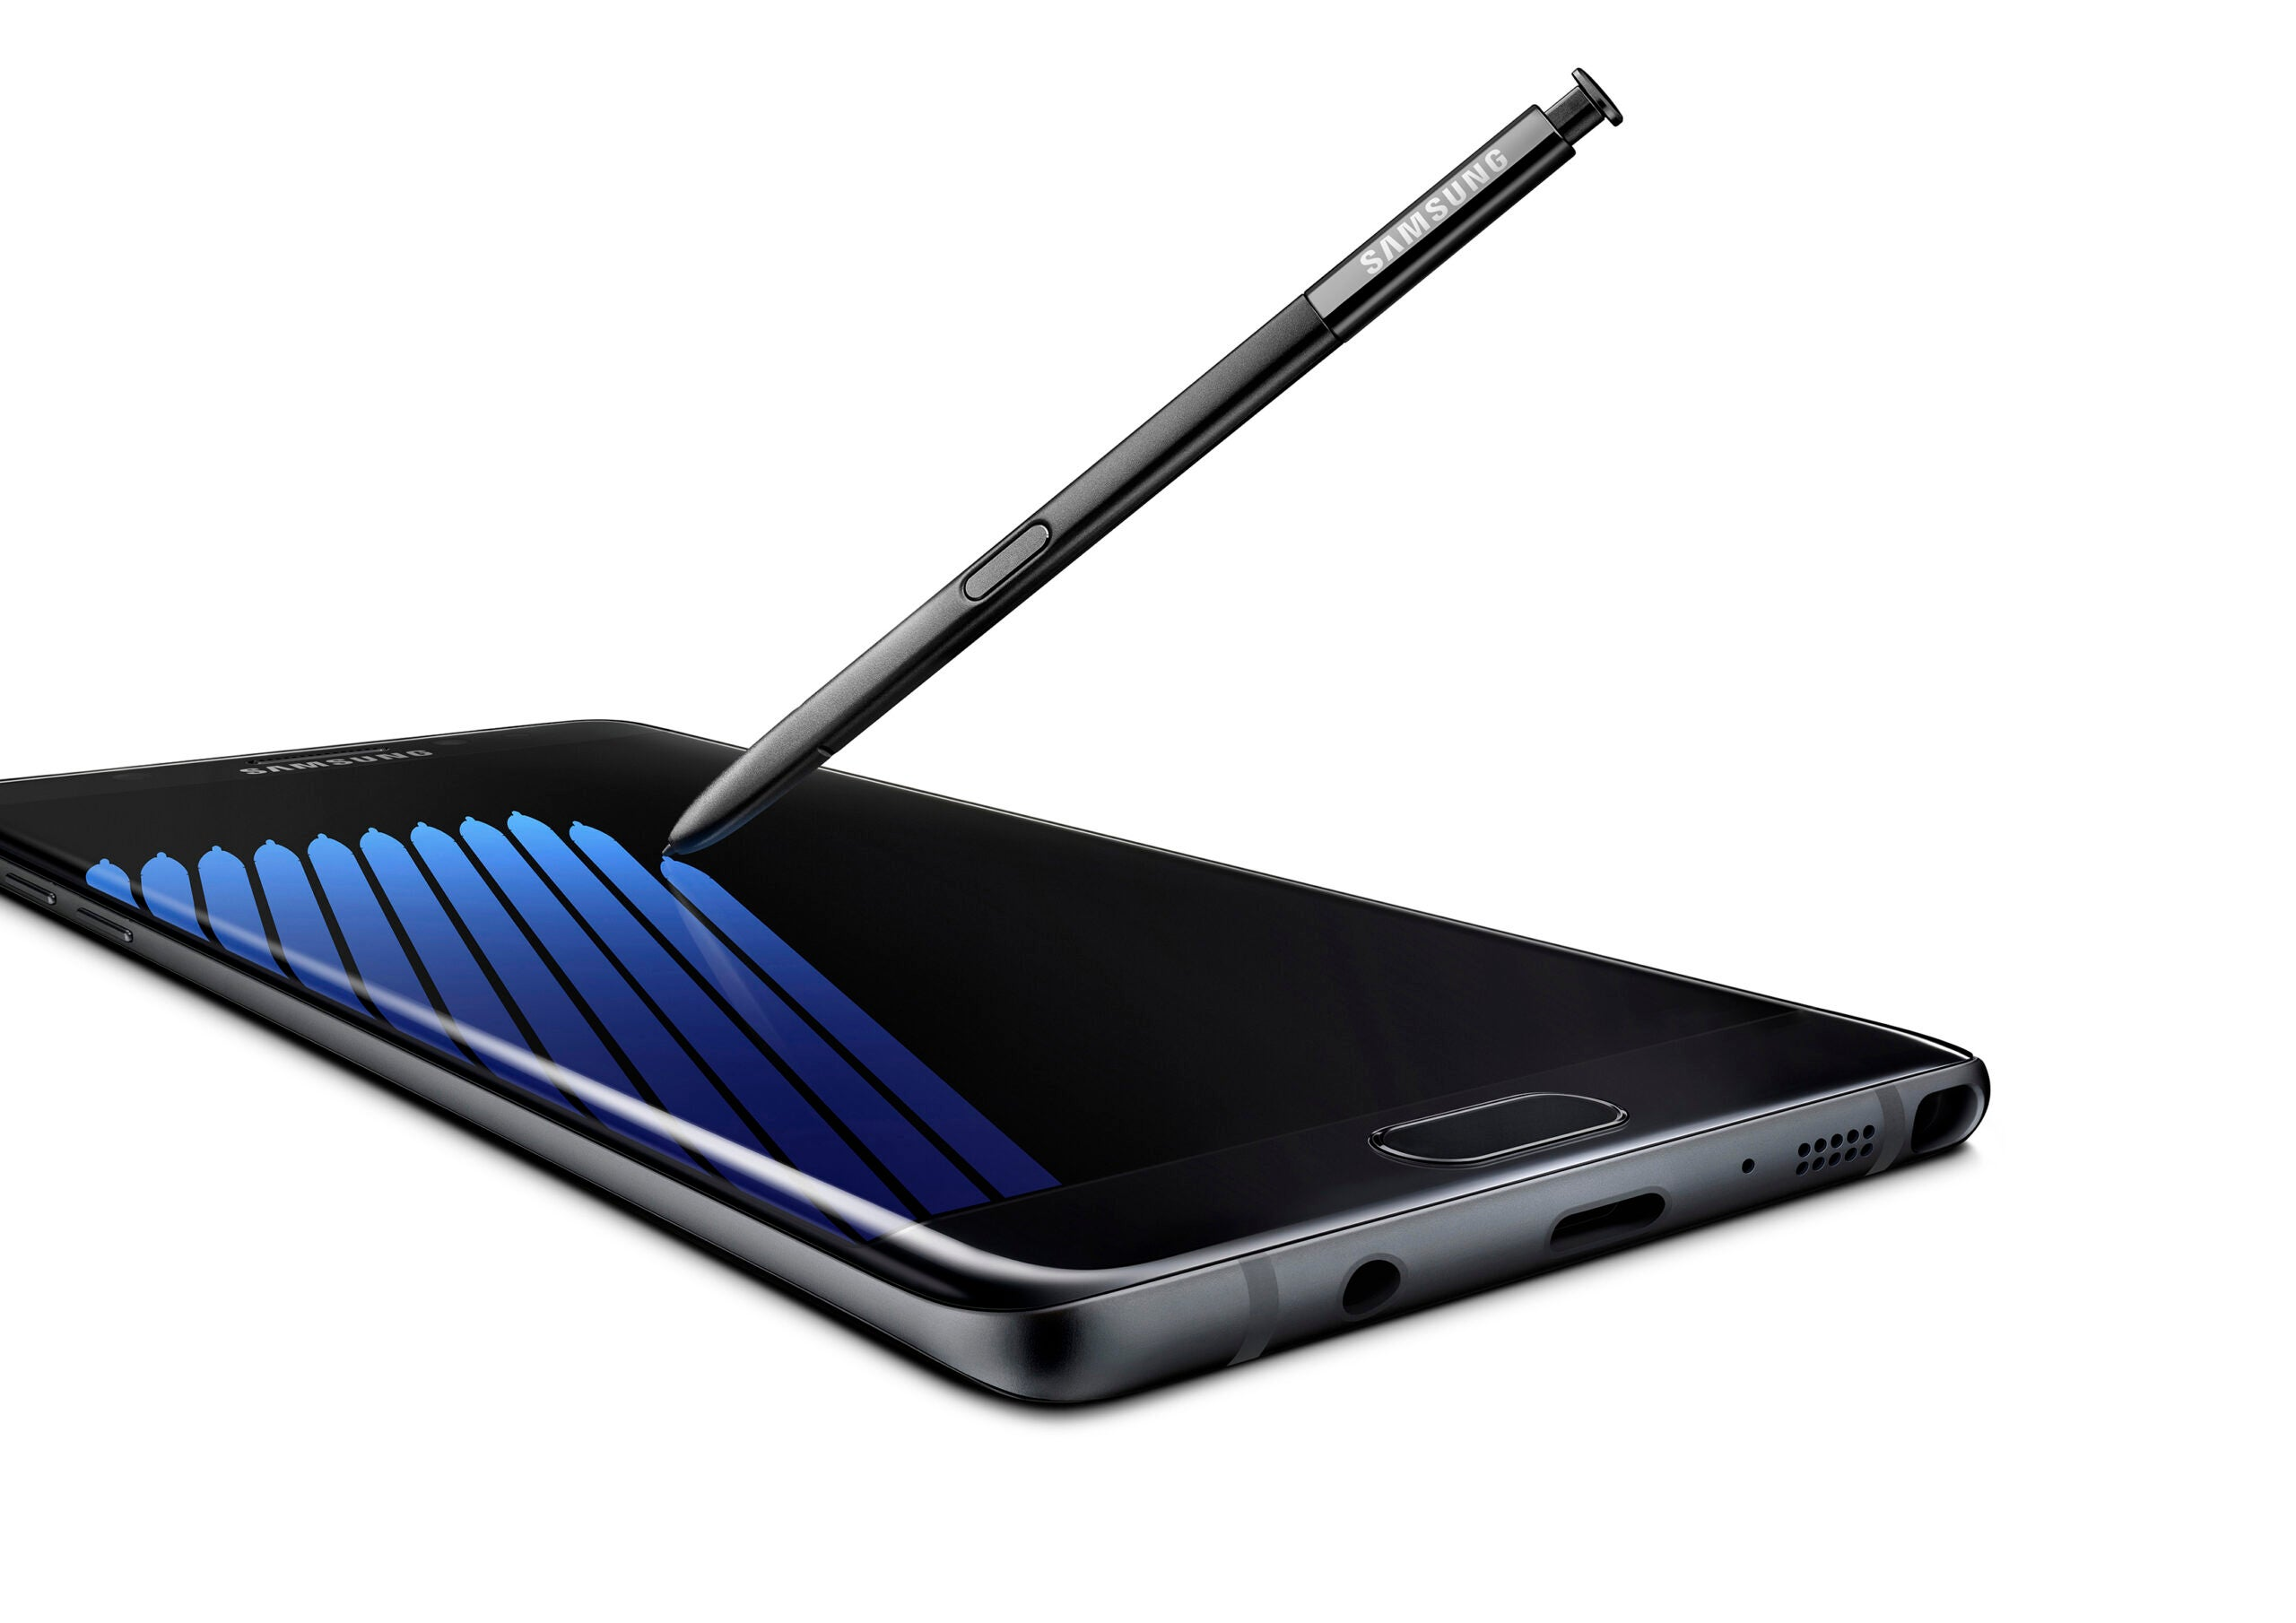 It's official: All major carriers will auto-brick the Samsung Galaxy Note 7